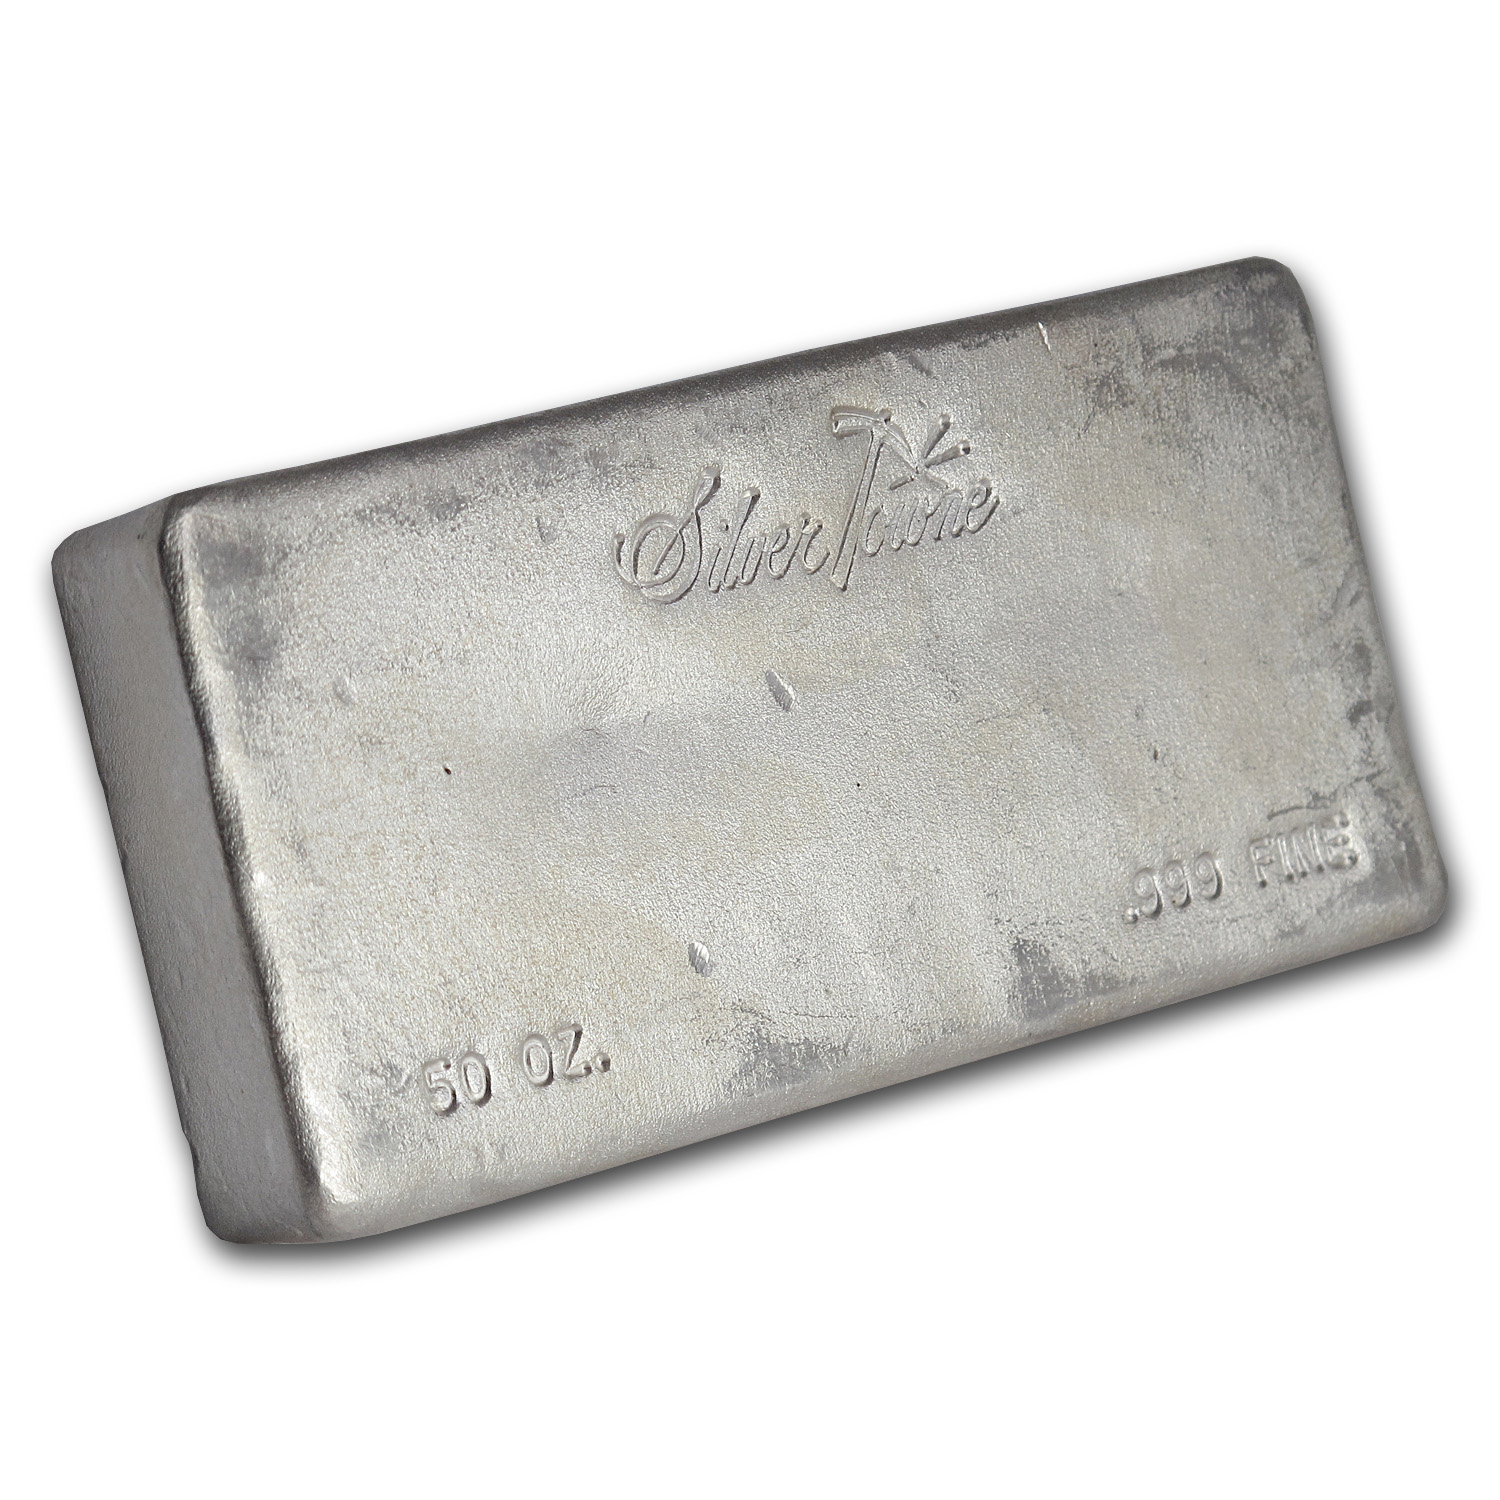 50 oz Silver Bars - Silvertowne (Vintage/Poured)